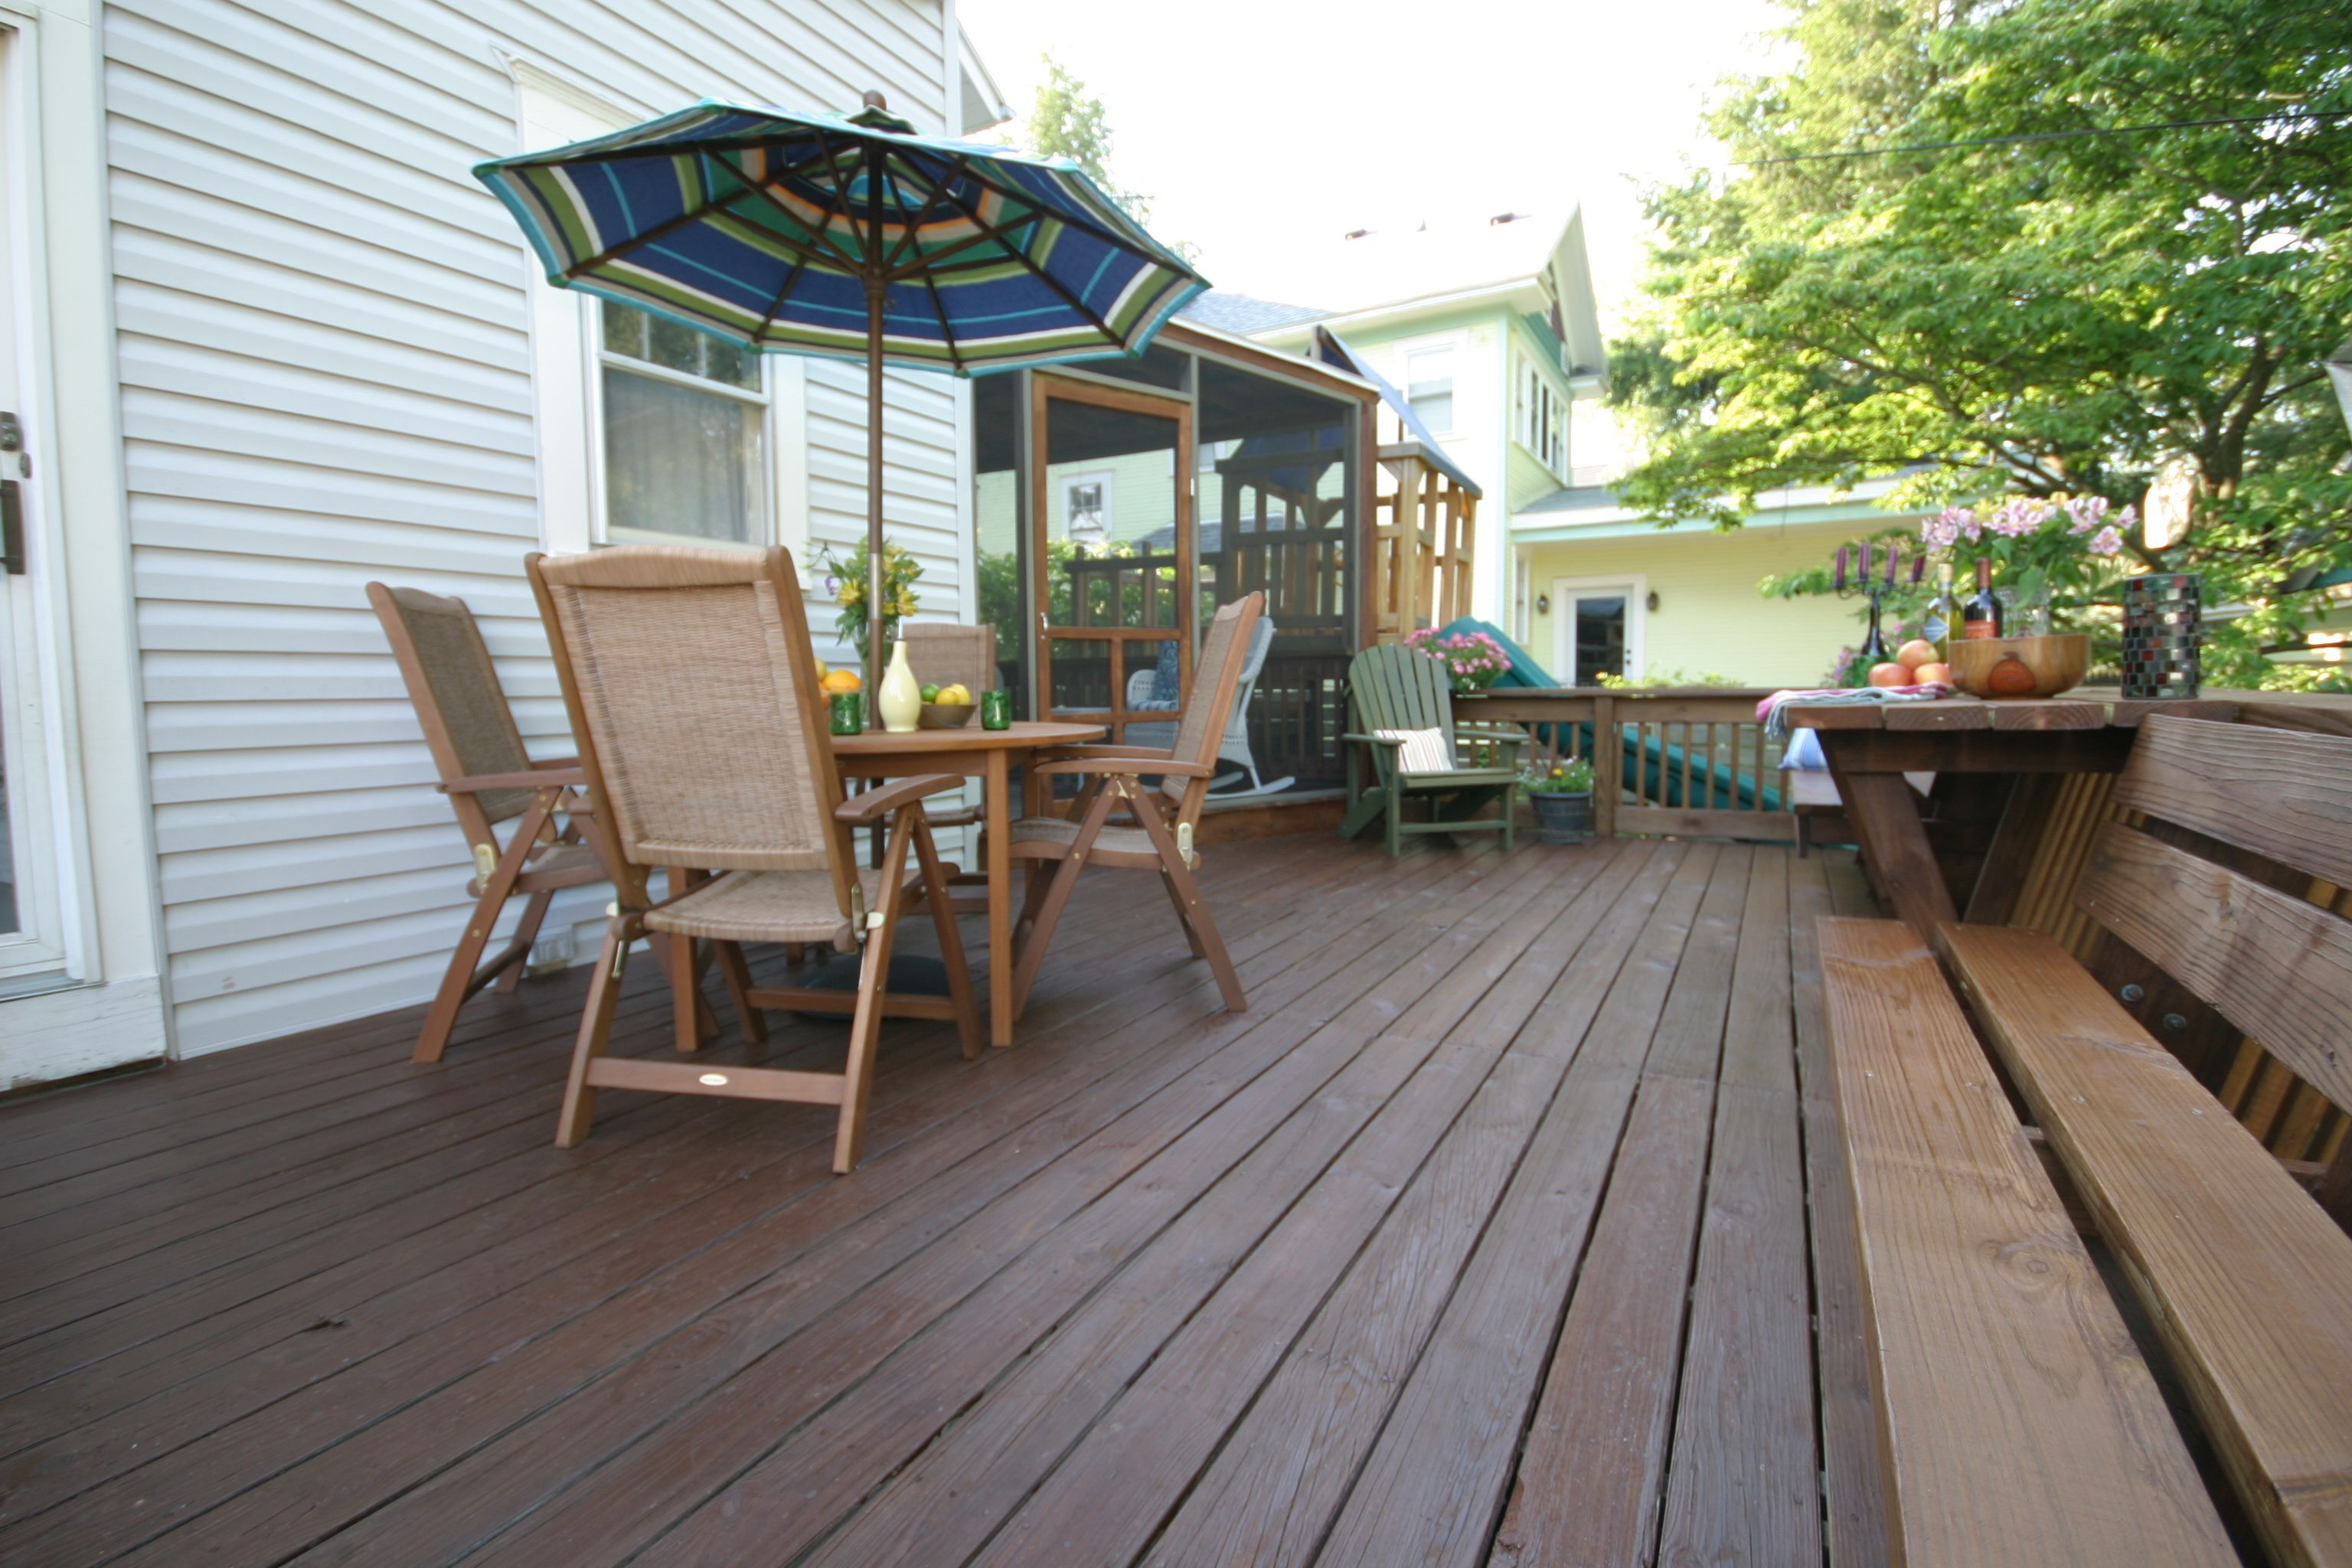 This deck is protected with thompsons water seal advanced tinted this deck is protected with thompsons water seal advanced tinted wood protector in sheer nutmeg brown baanklon Gallery